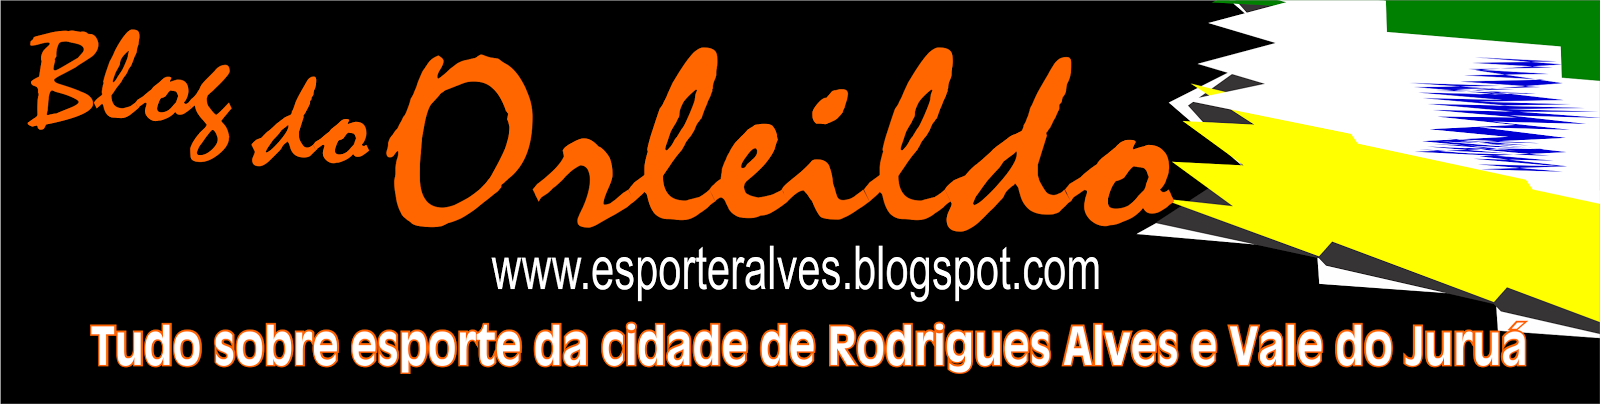 BLOG DO ORLEILDO